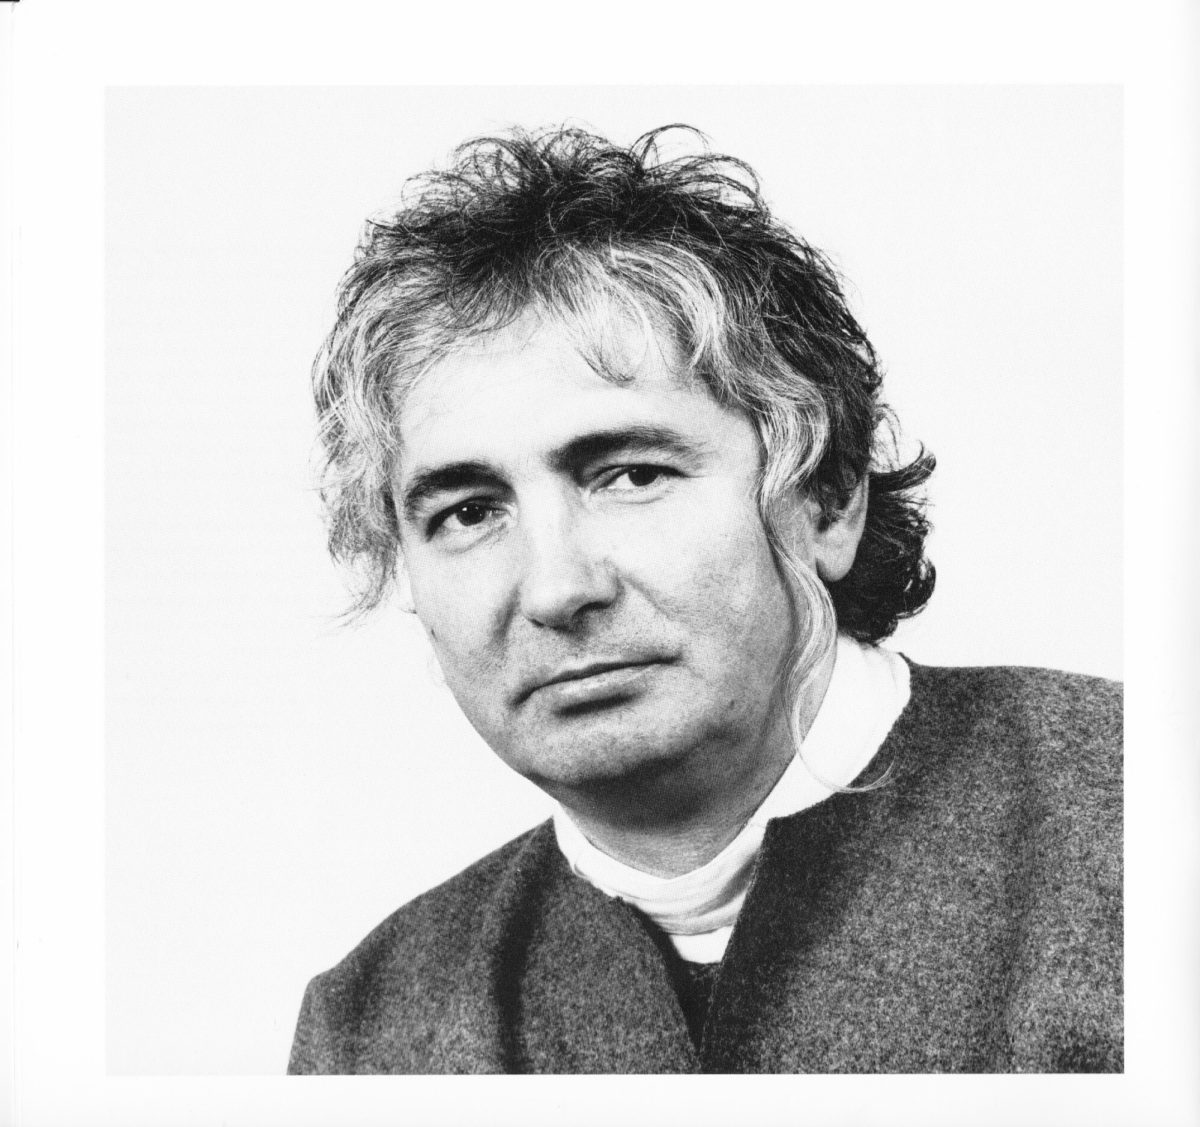 Announcing representation of the Estate of Mihai Olos within the UK